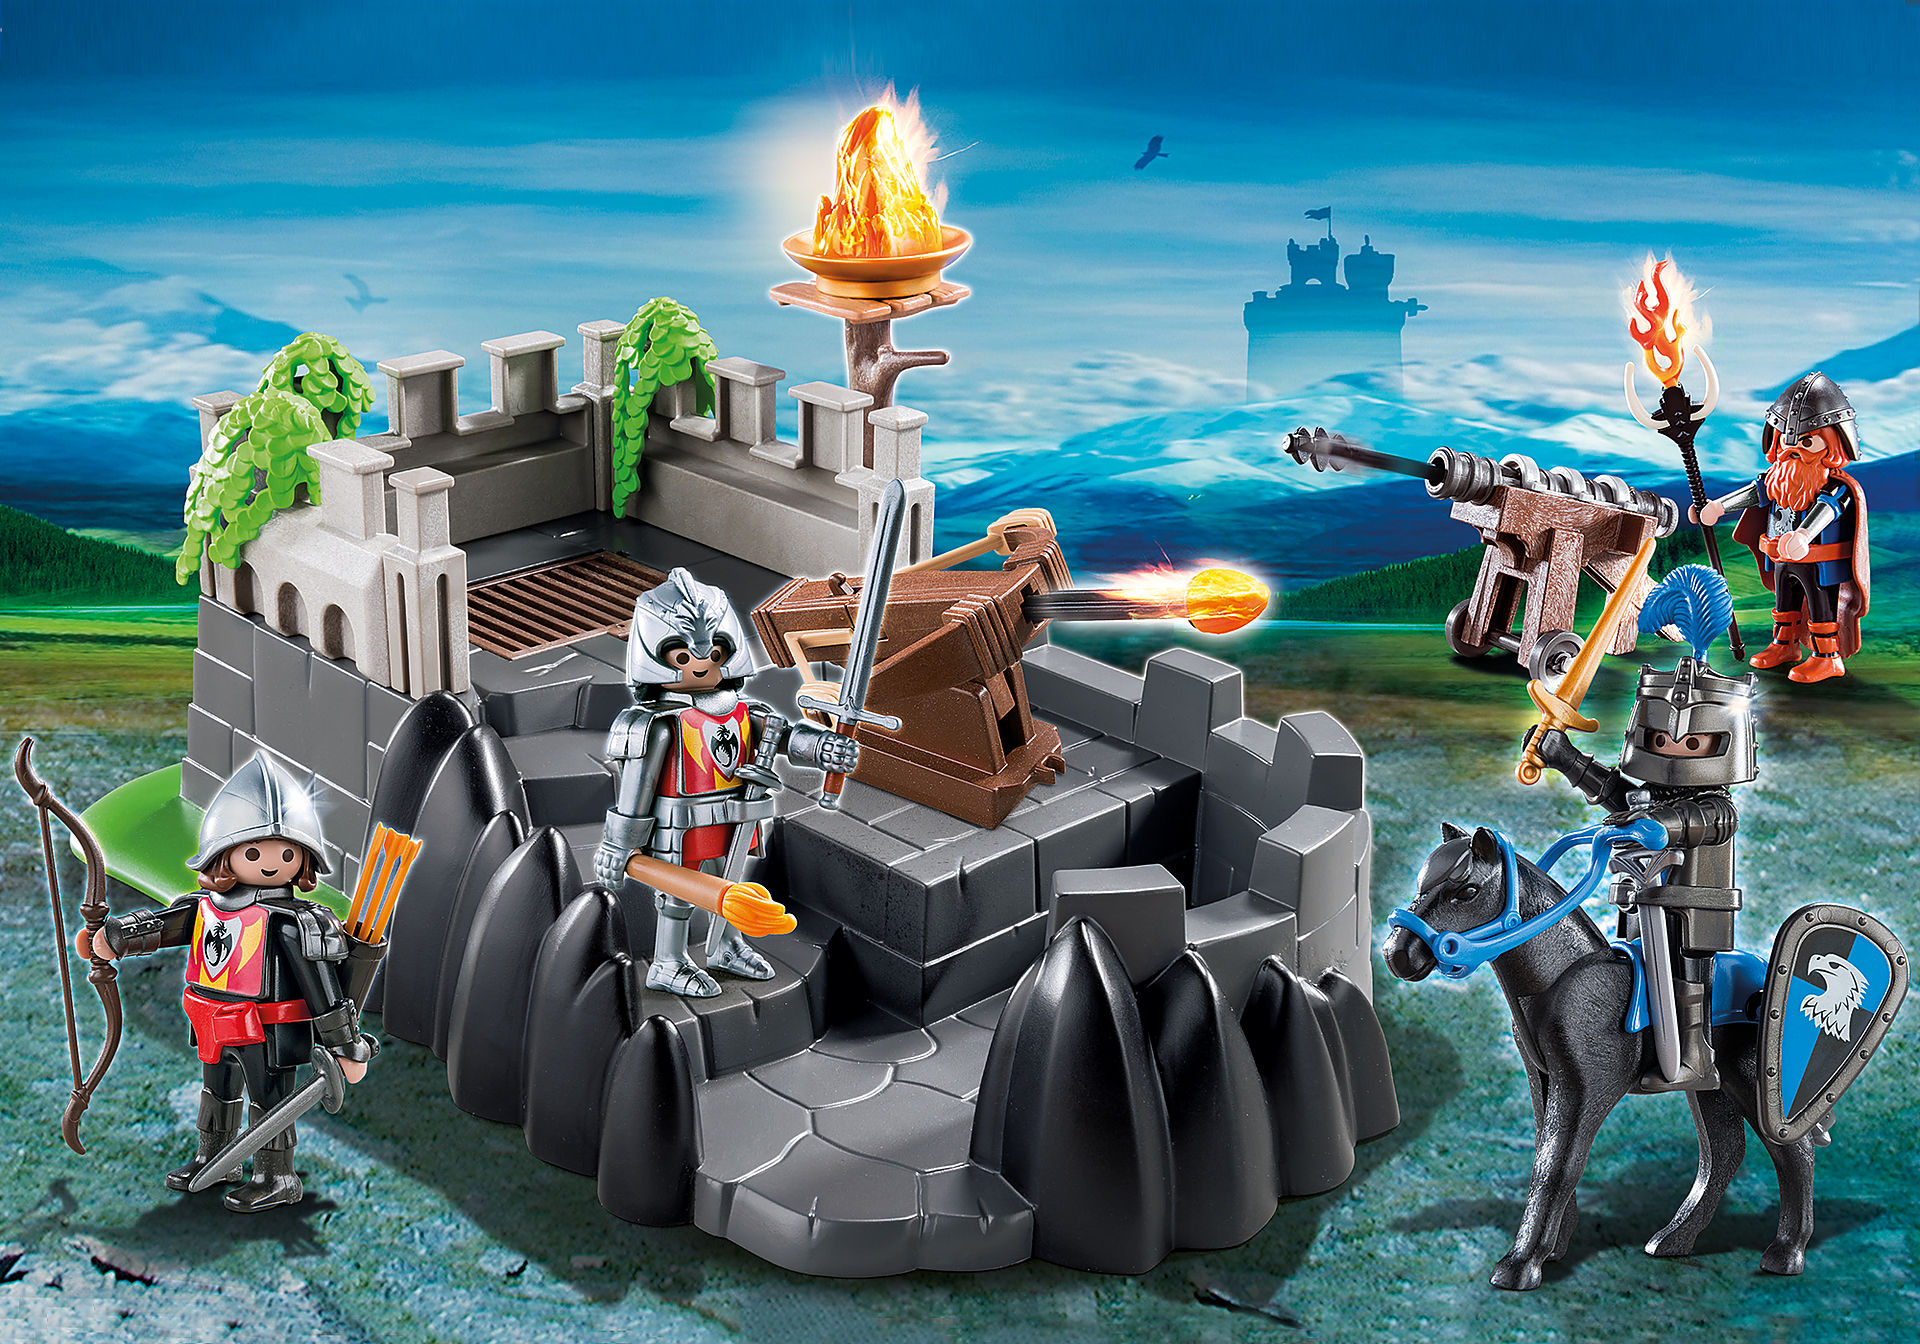 http://media.playmobil.com/i/playmobil/6627_product_detail/Καταφύγιο ιπποτών δράκου